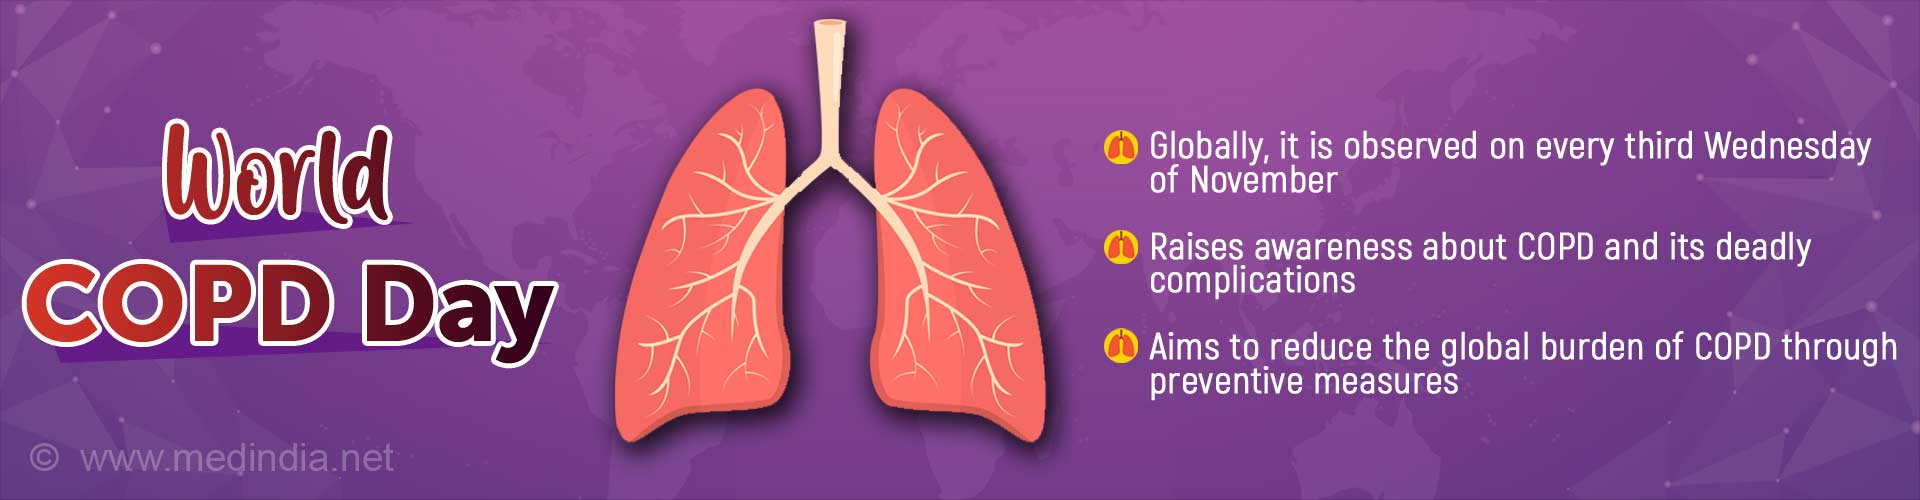 World COPD Day: 'All Together to End COPD'